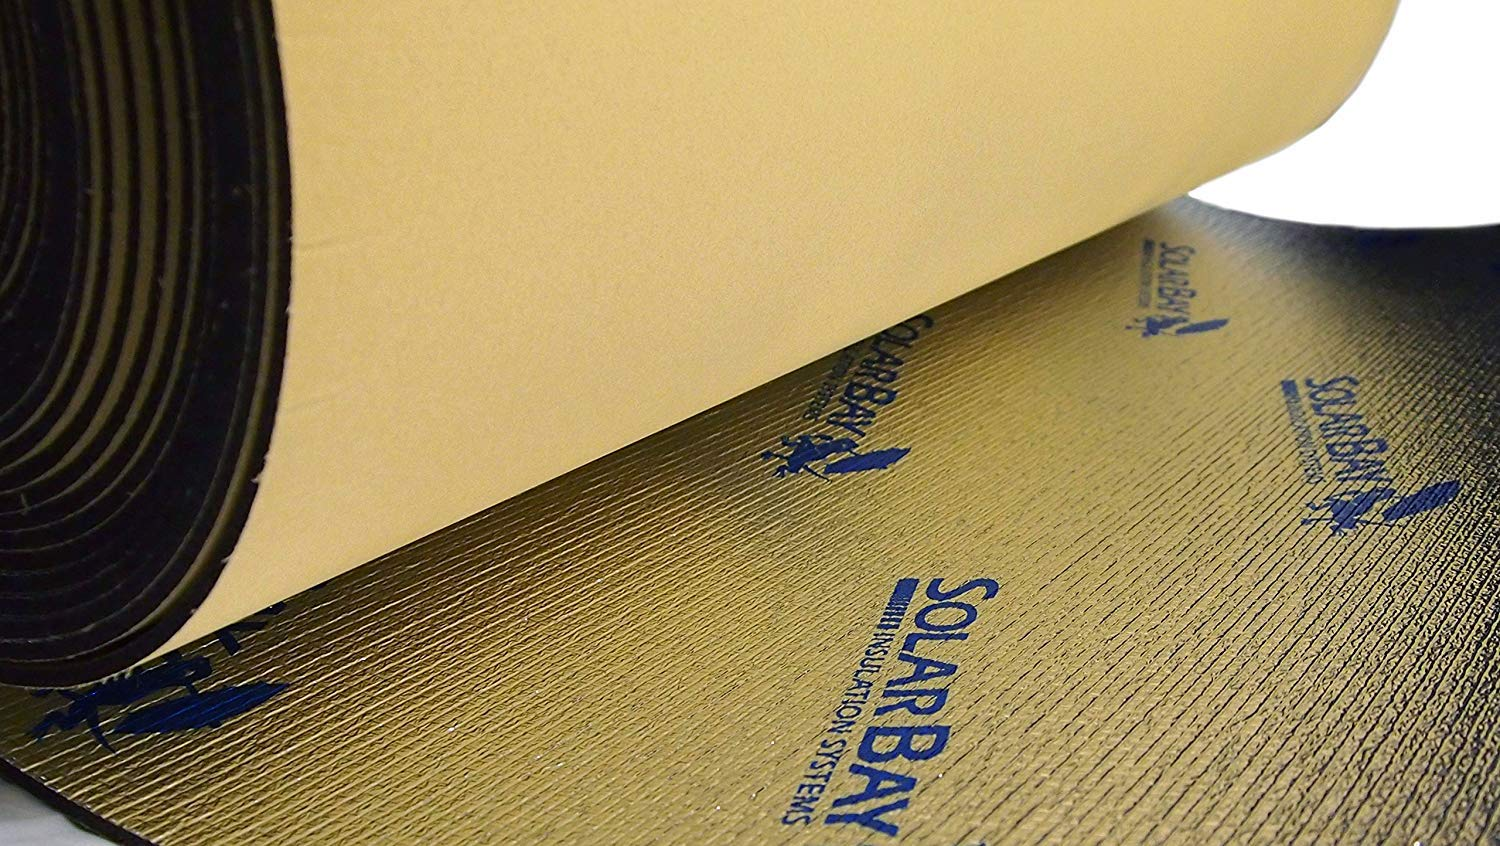 Underlay and Household Use Caravans 10m x 100cm Wide Solar Bay Self Adhesive Thermal and Acoustic XPEMP Foam Insulation for Campers Motorhomes